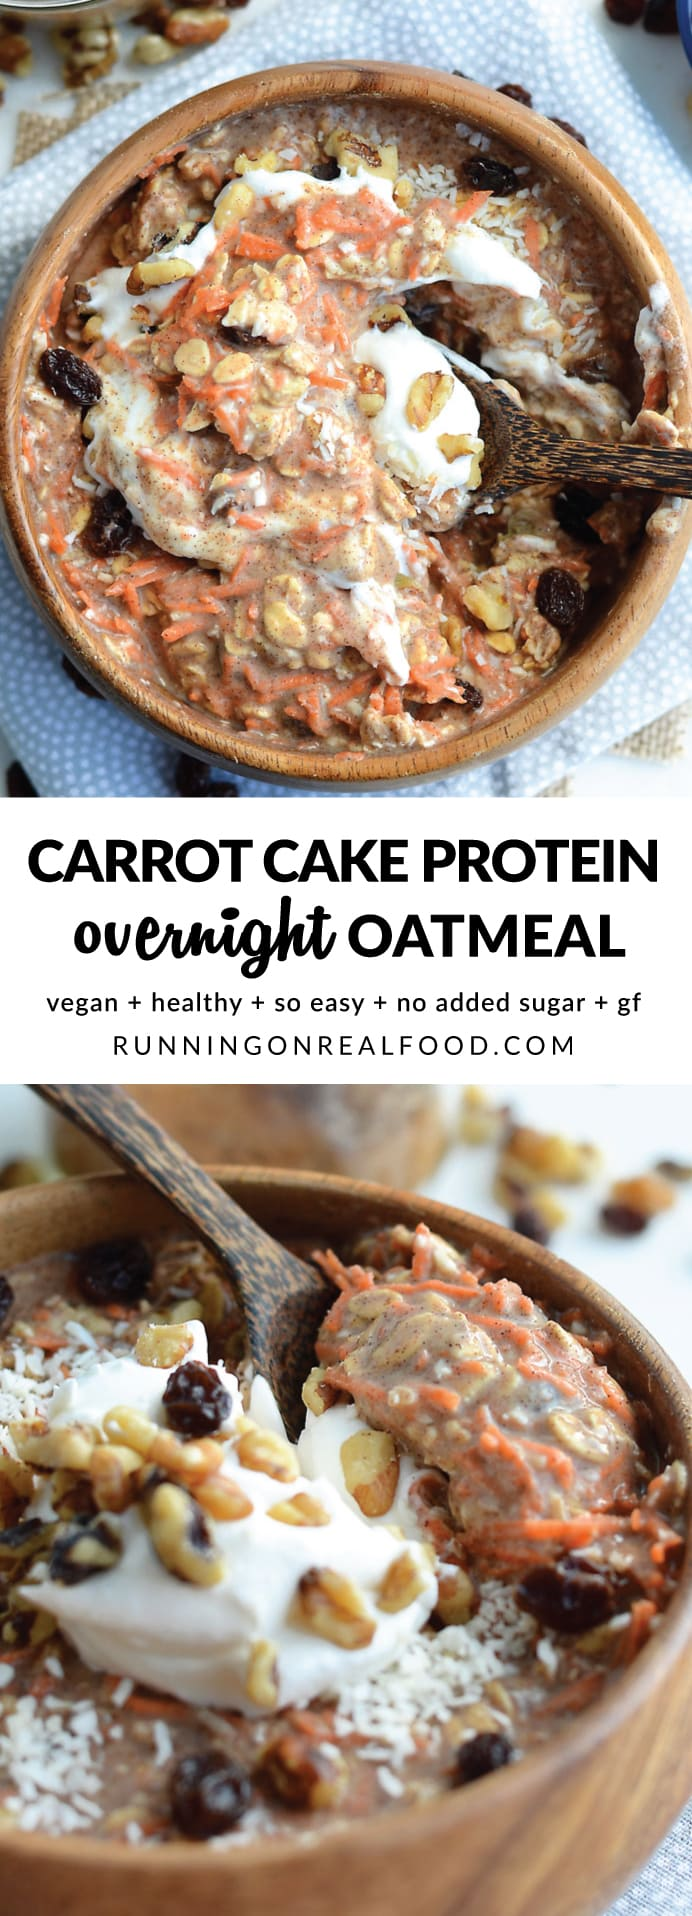 These delicious, healthy and nourishing carrot cake overnight oats take just minutes to prep with simple ingredients, they're high in plant-based protein and they taste incredible! Serve with a dollop of coconut whipped cream or your favourite dairy-free yogurt. Or add extra toppings like pineapple and walnuts! Vegan, GF.